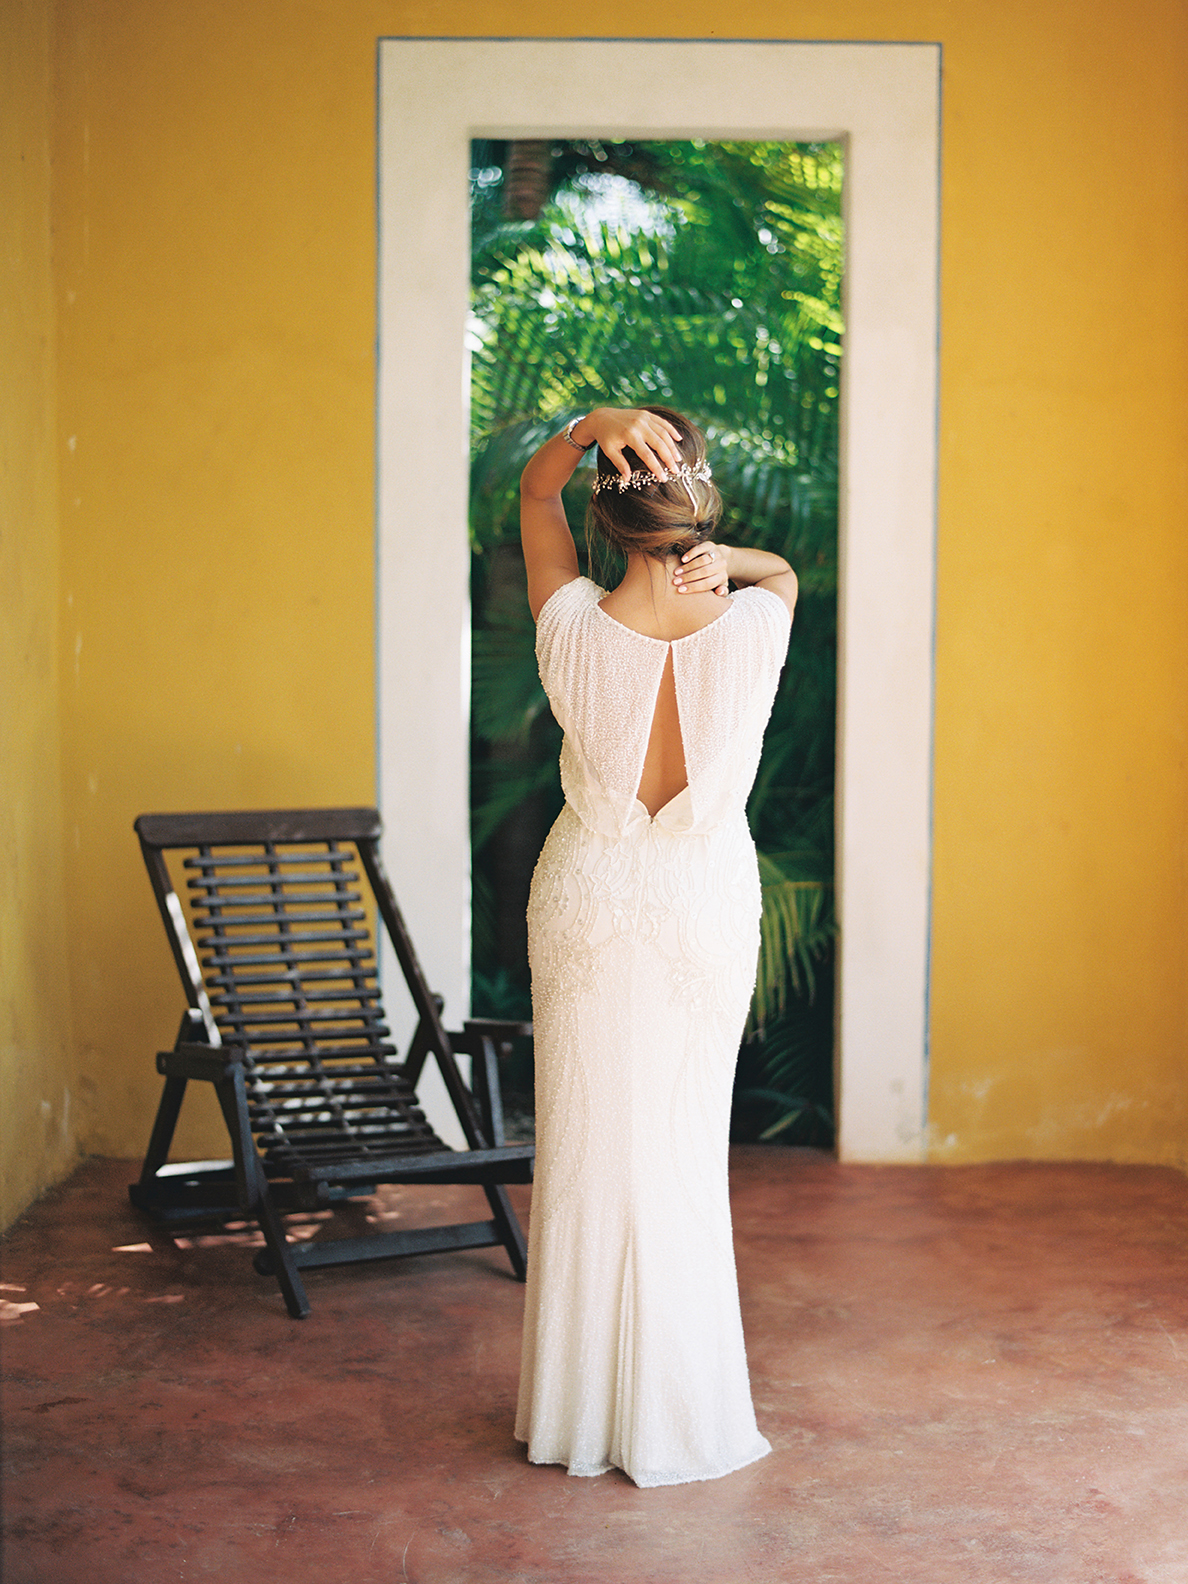 103_Dany+Sarah_Merida_Mexico_Wedding_Brumley & Wells_Fine_art_film_photography.jpg